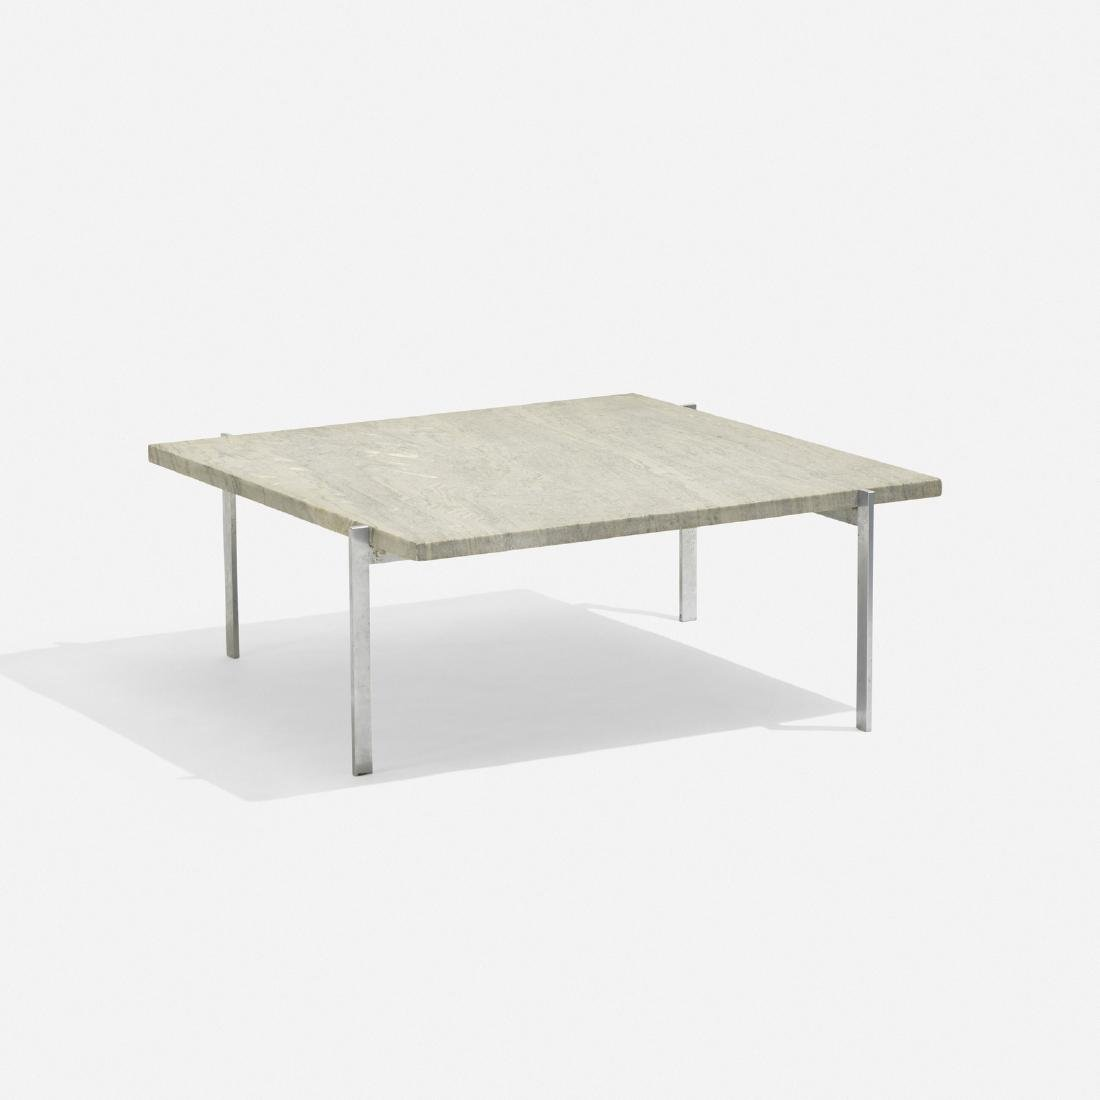 Poul Kjaerholm, PK 61 coffee table